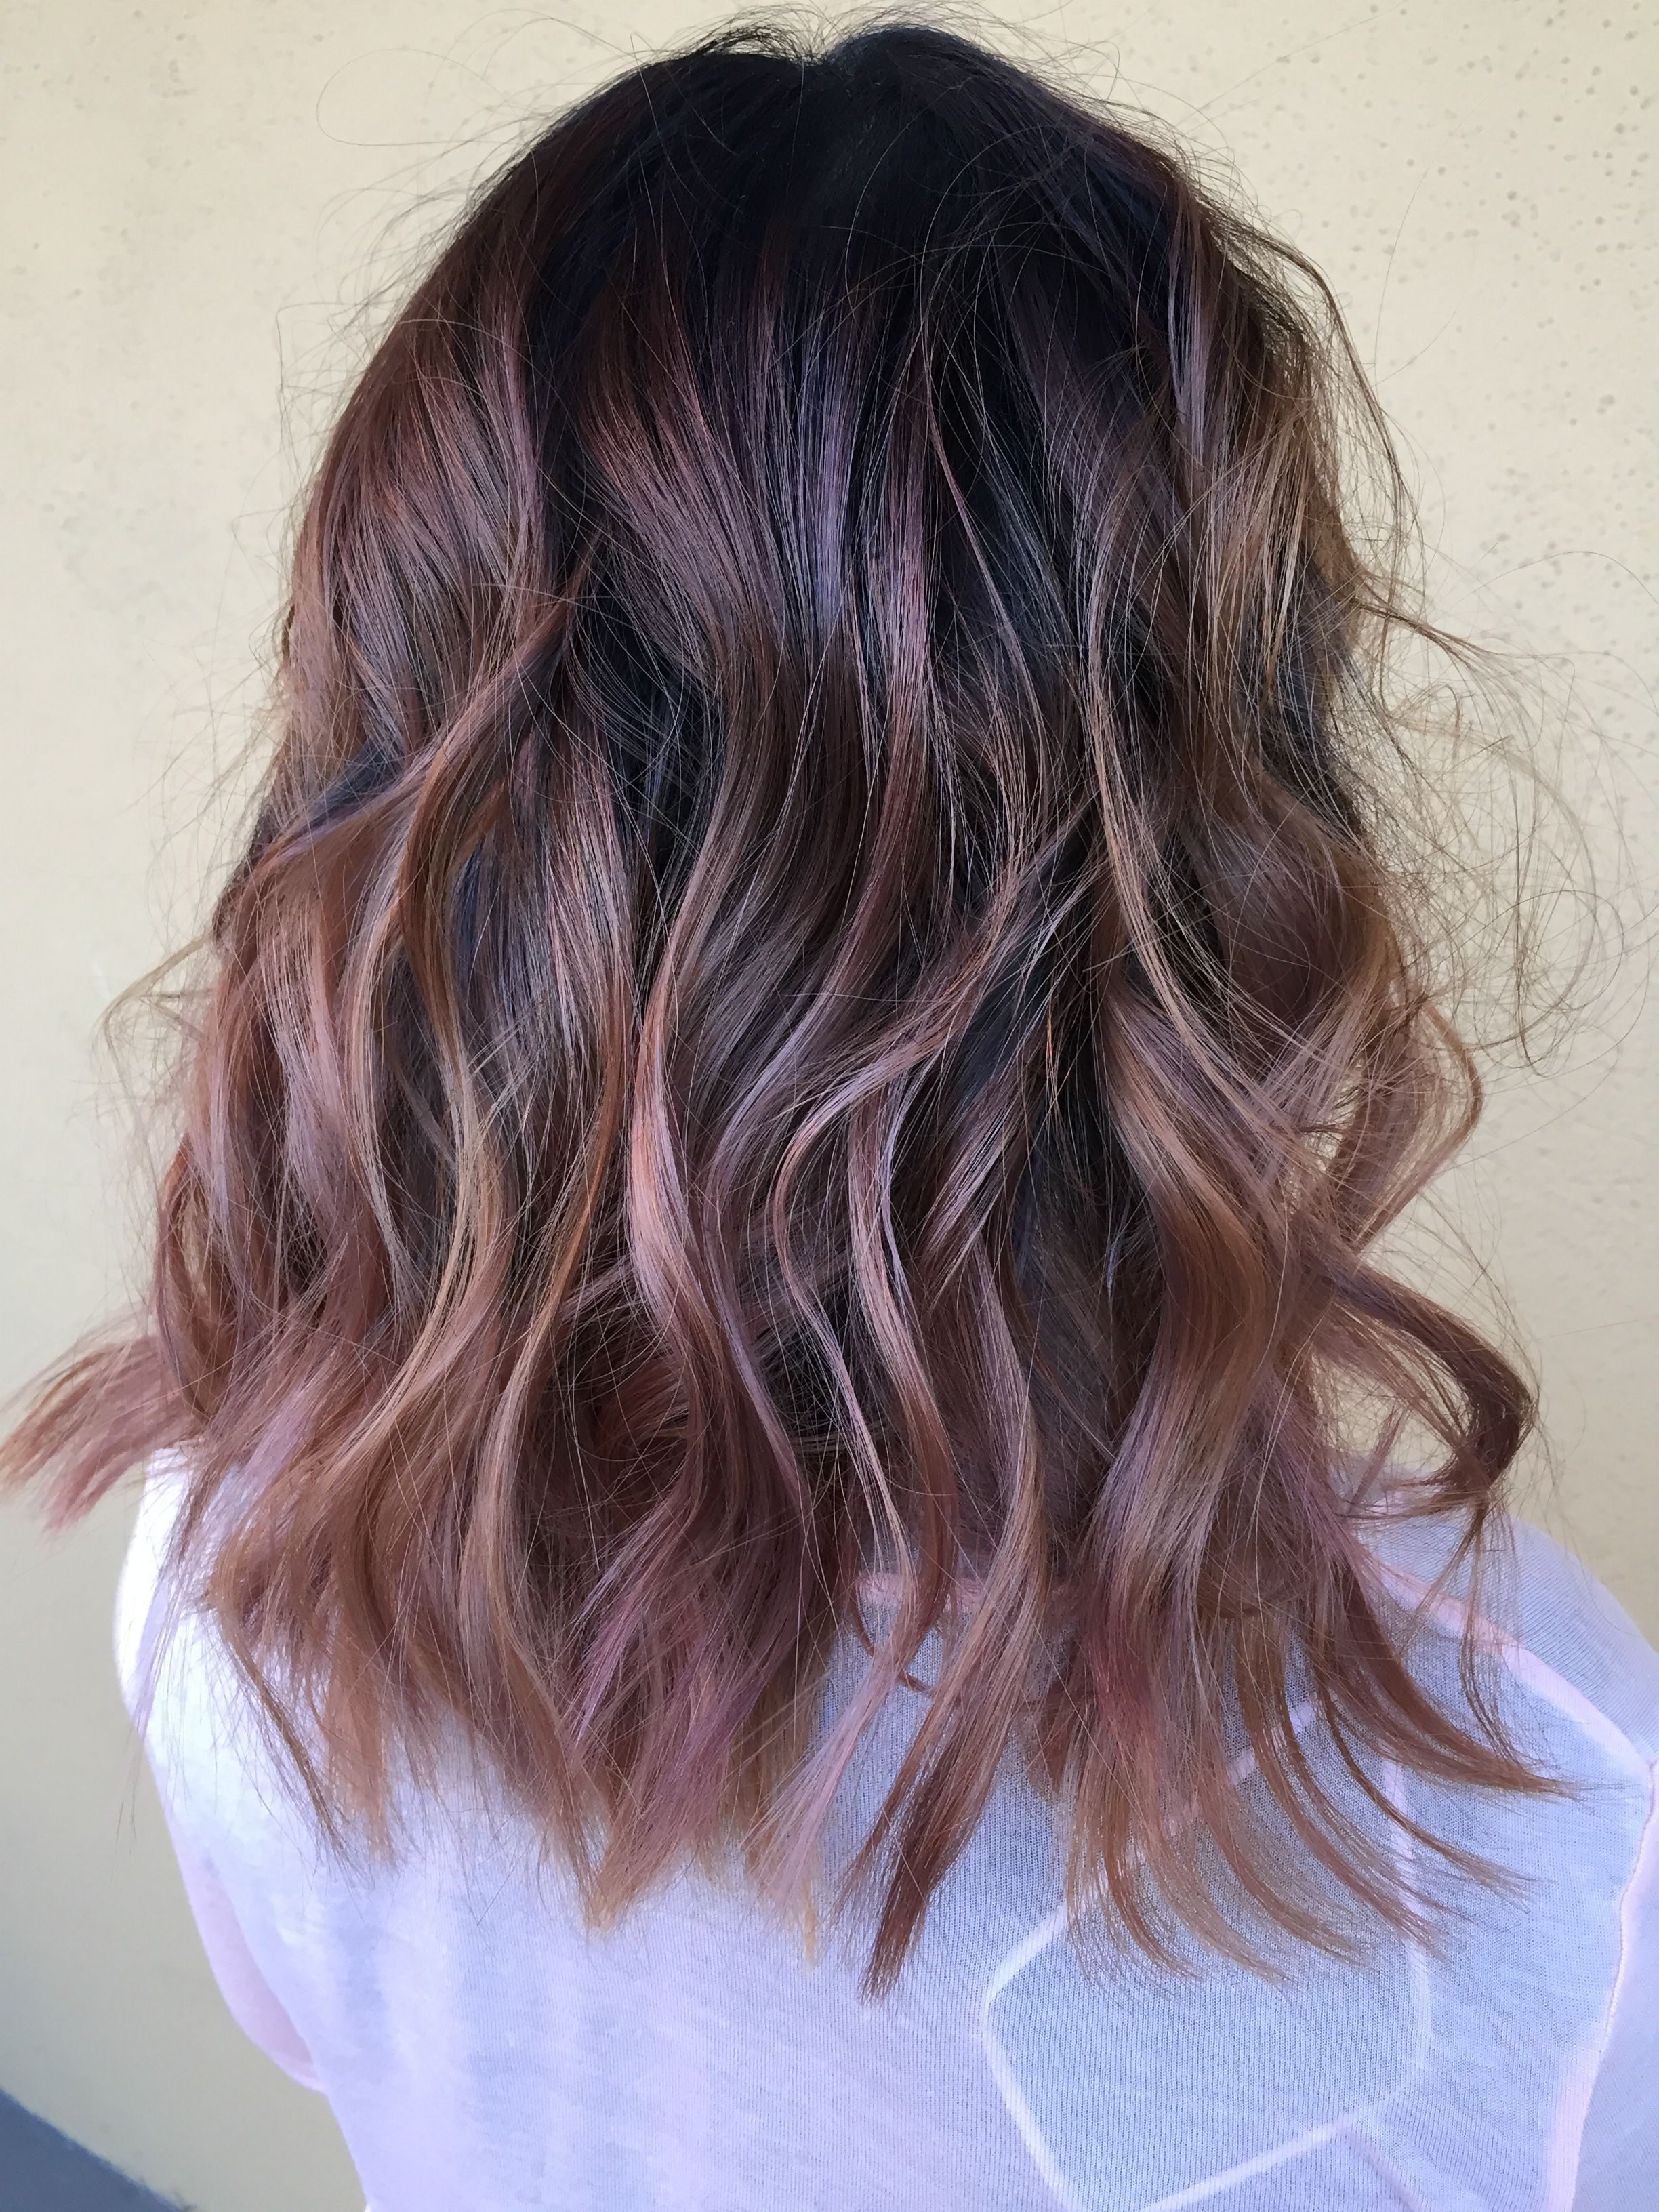 Dusty Rose Gold Balayage On D Lushus By Allison Gregg At